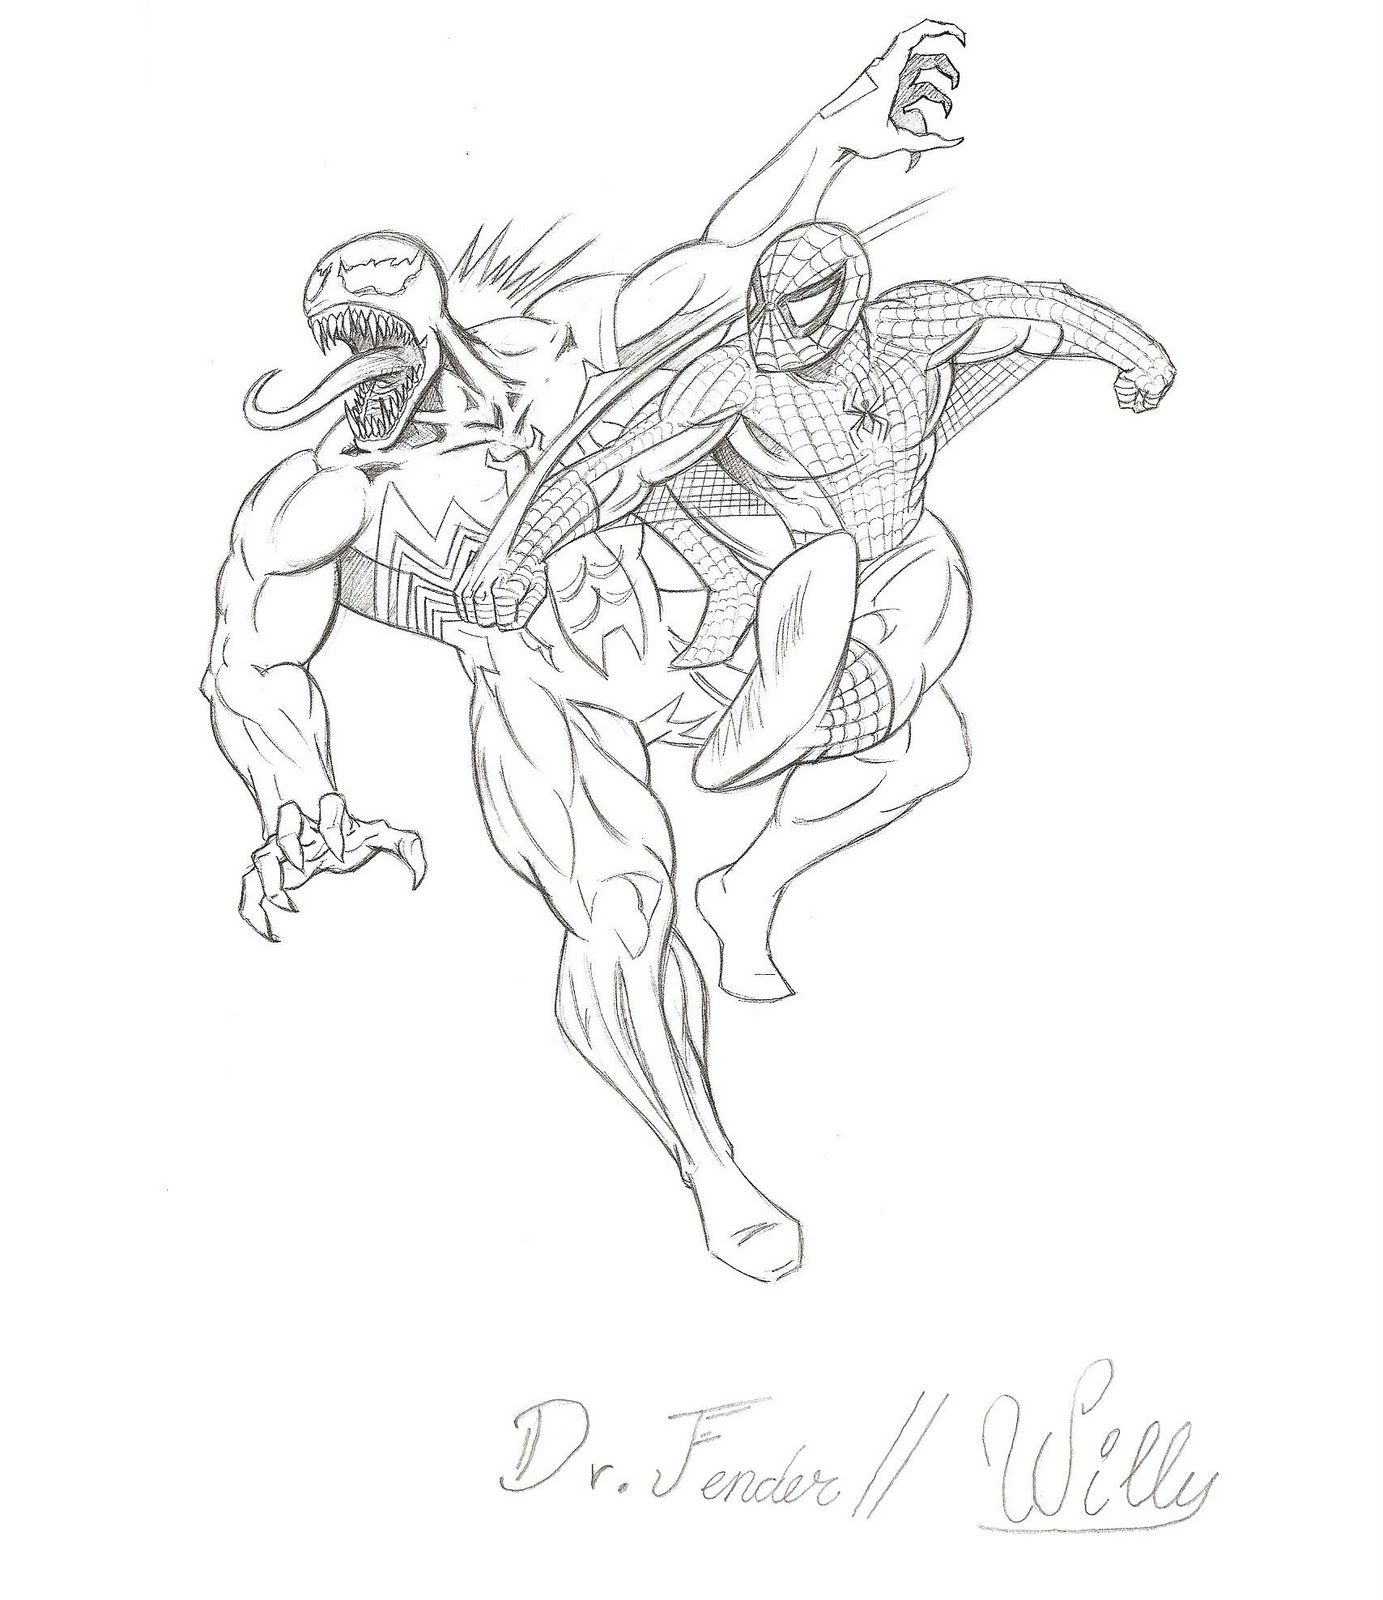 Dibujos Para Colorear De Spiderman Vs Venom ~ Ideas Creativas Sobre ...